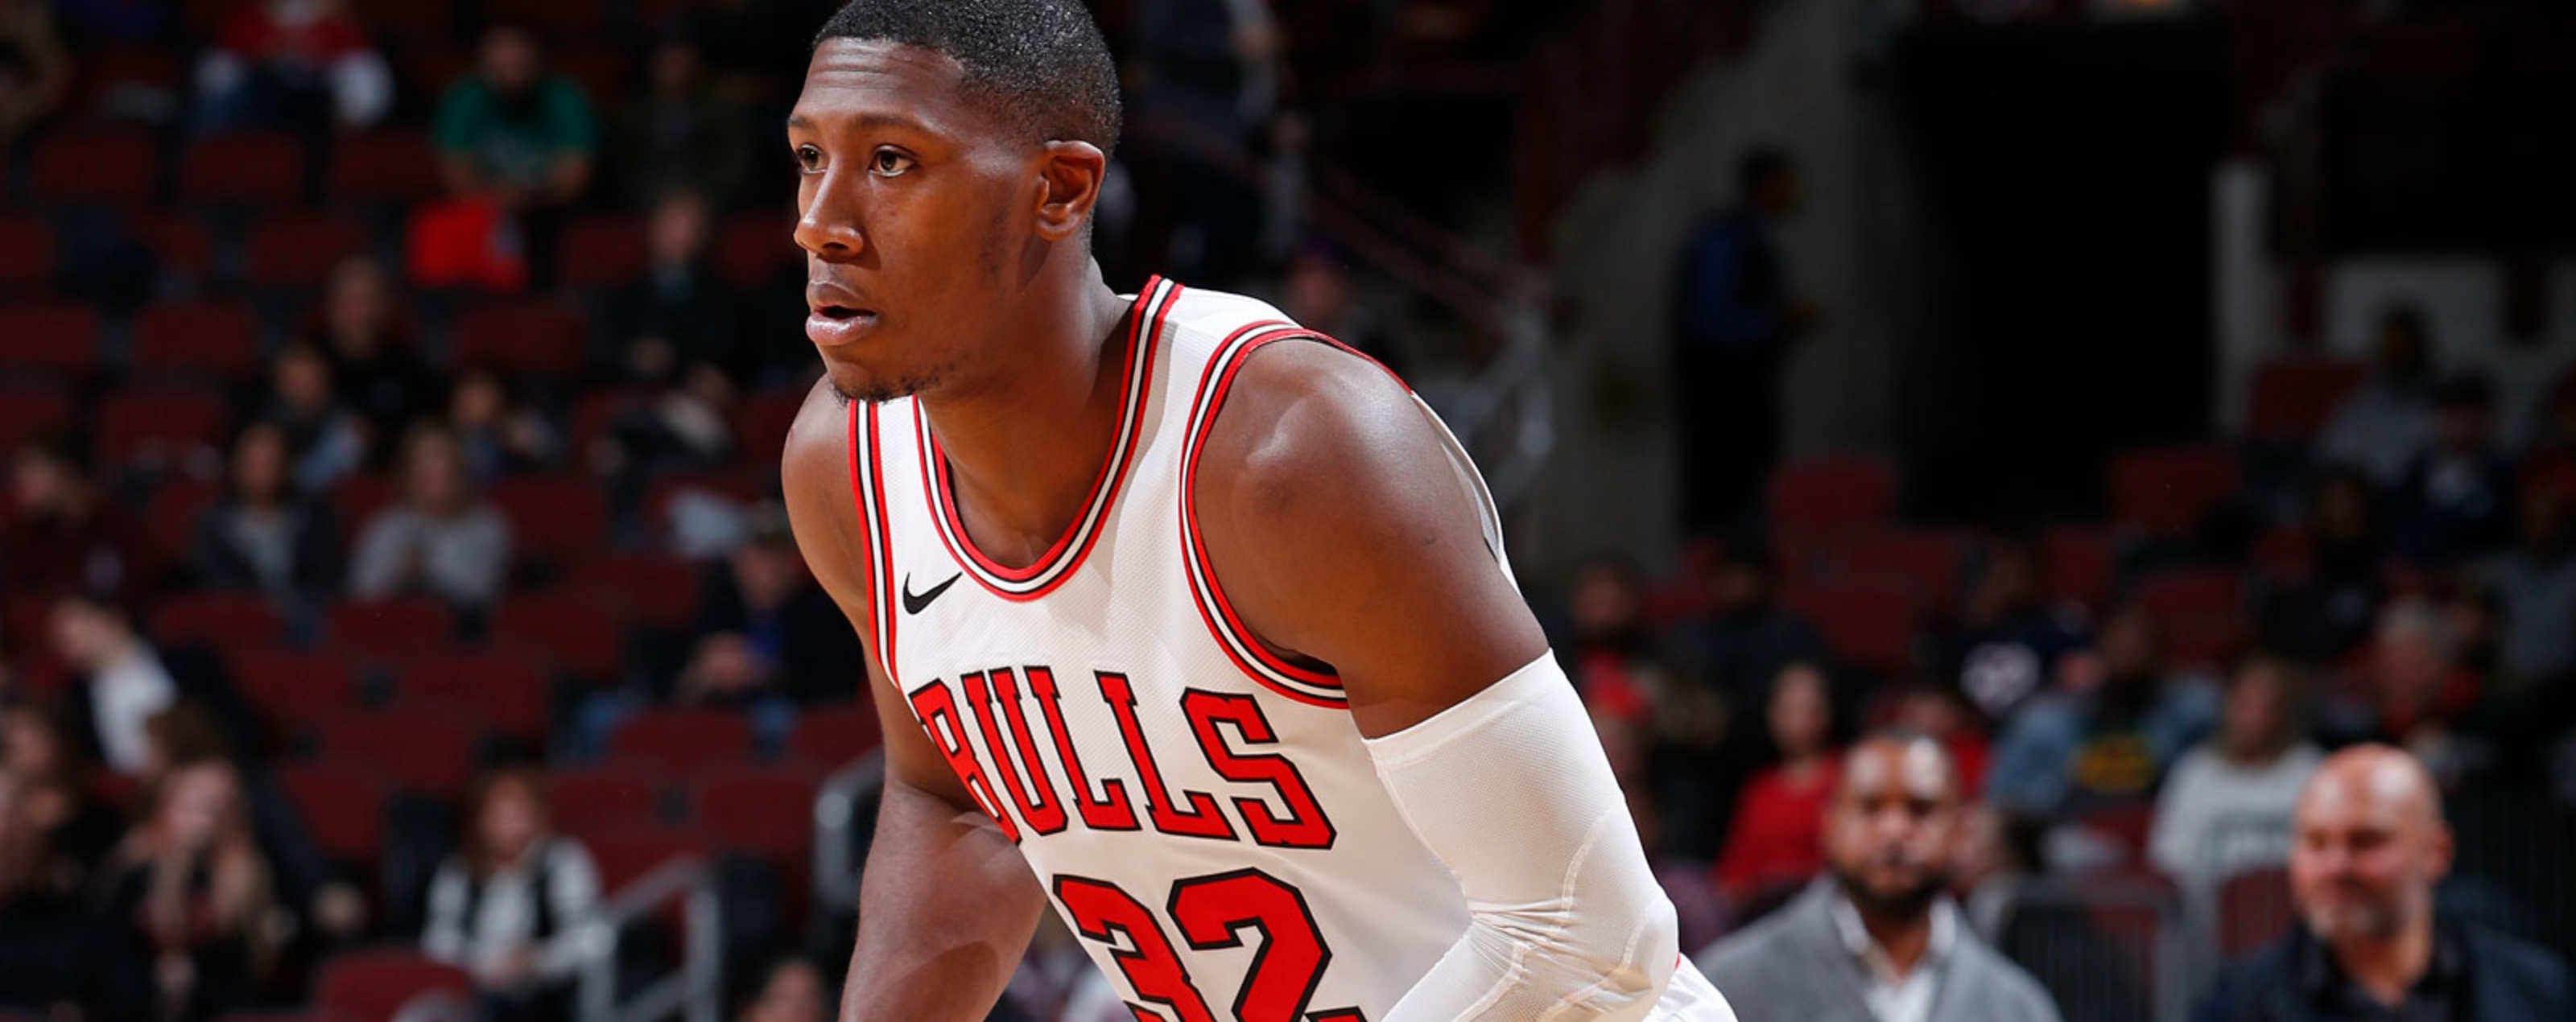 Kris Dunn #32 of the Chicago Bulls dribbles the ball against the Denver Nuggets during a pre-season game on October 12, 2018 at the United Center in Chicago, Illinois.